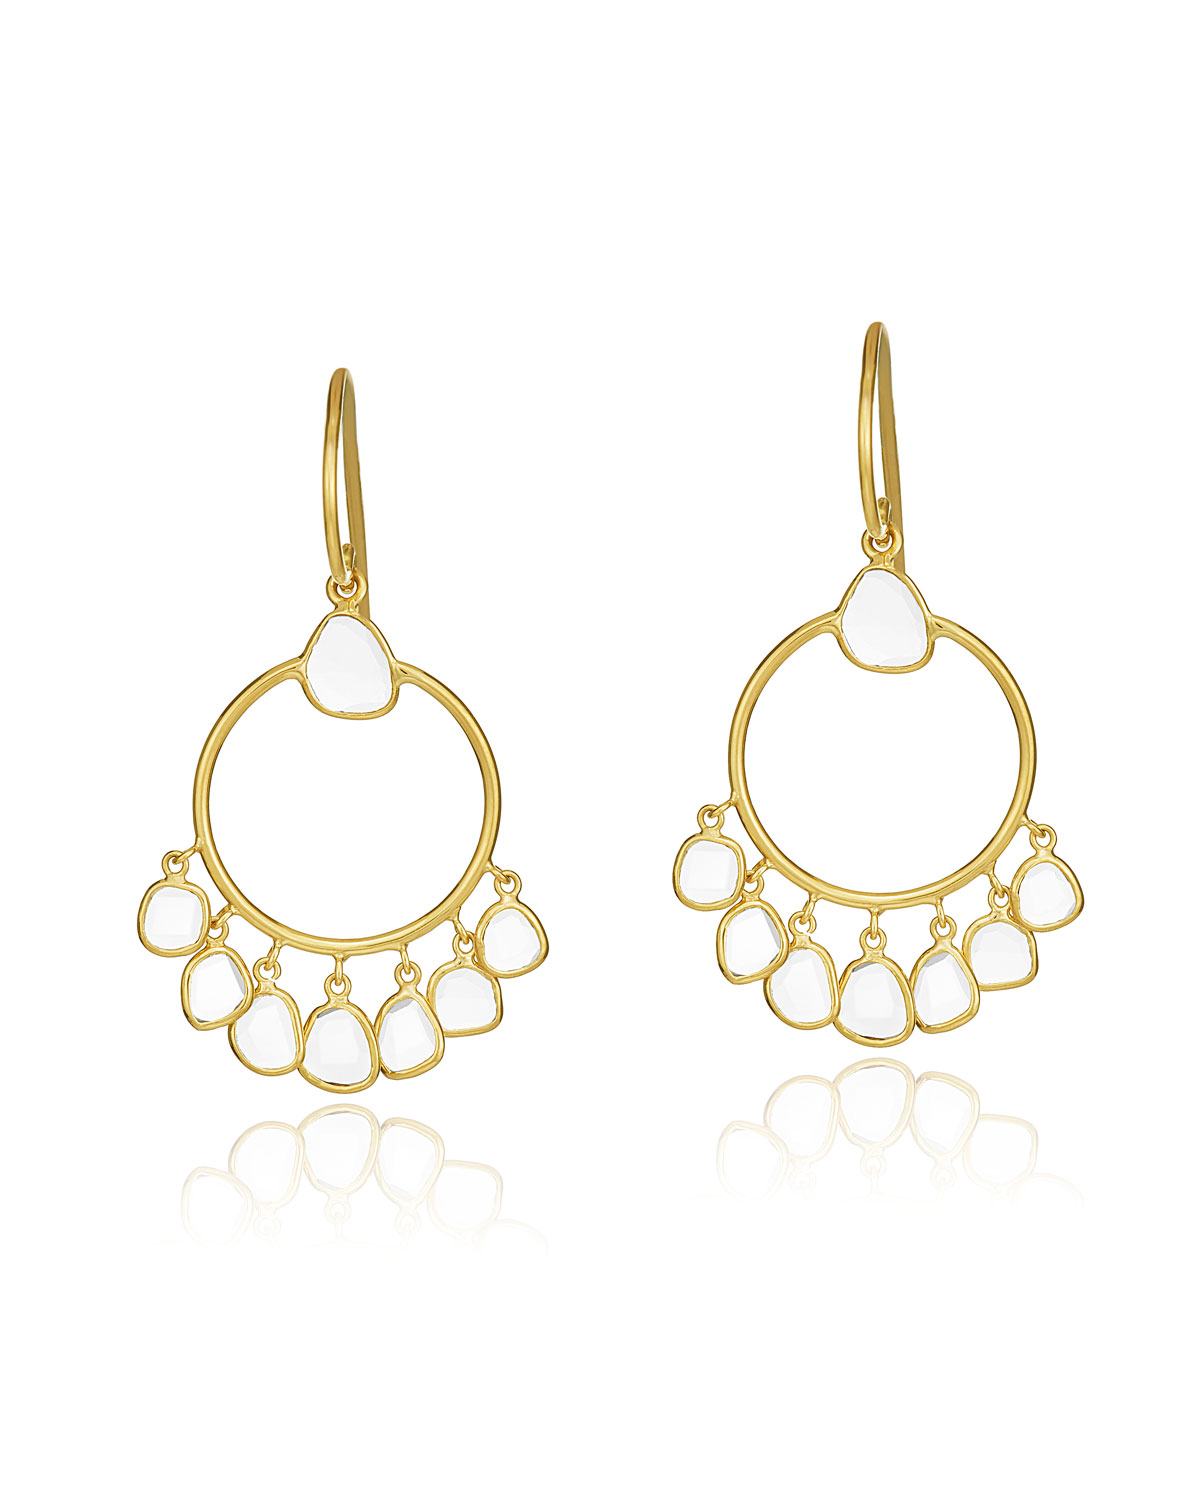 LEGEND AMRAPALI Polki Diamond Slice Hoop Drop Earrings